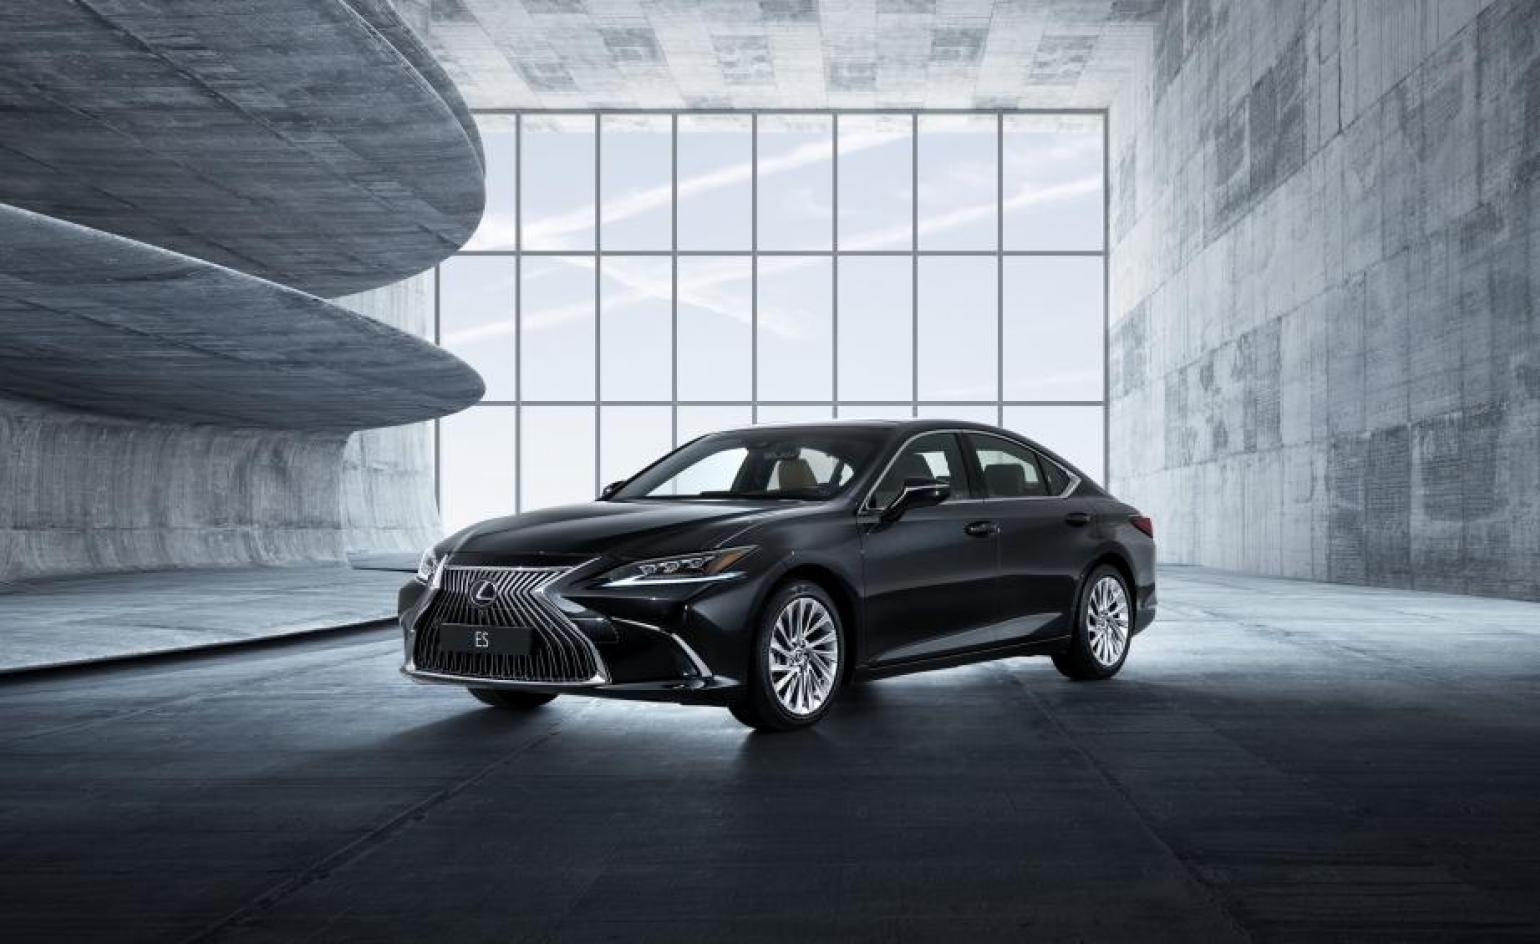 Lexus ES 2019 saloon review and test drive | Wallpaper*